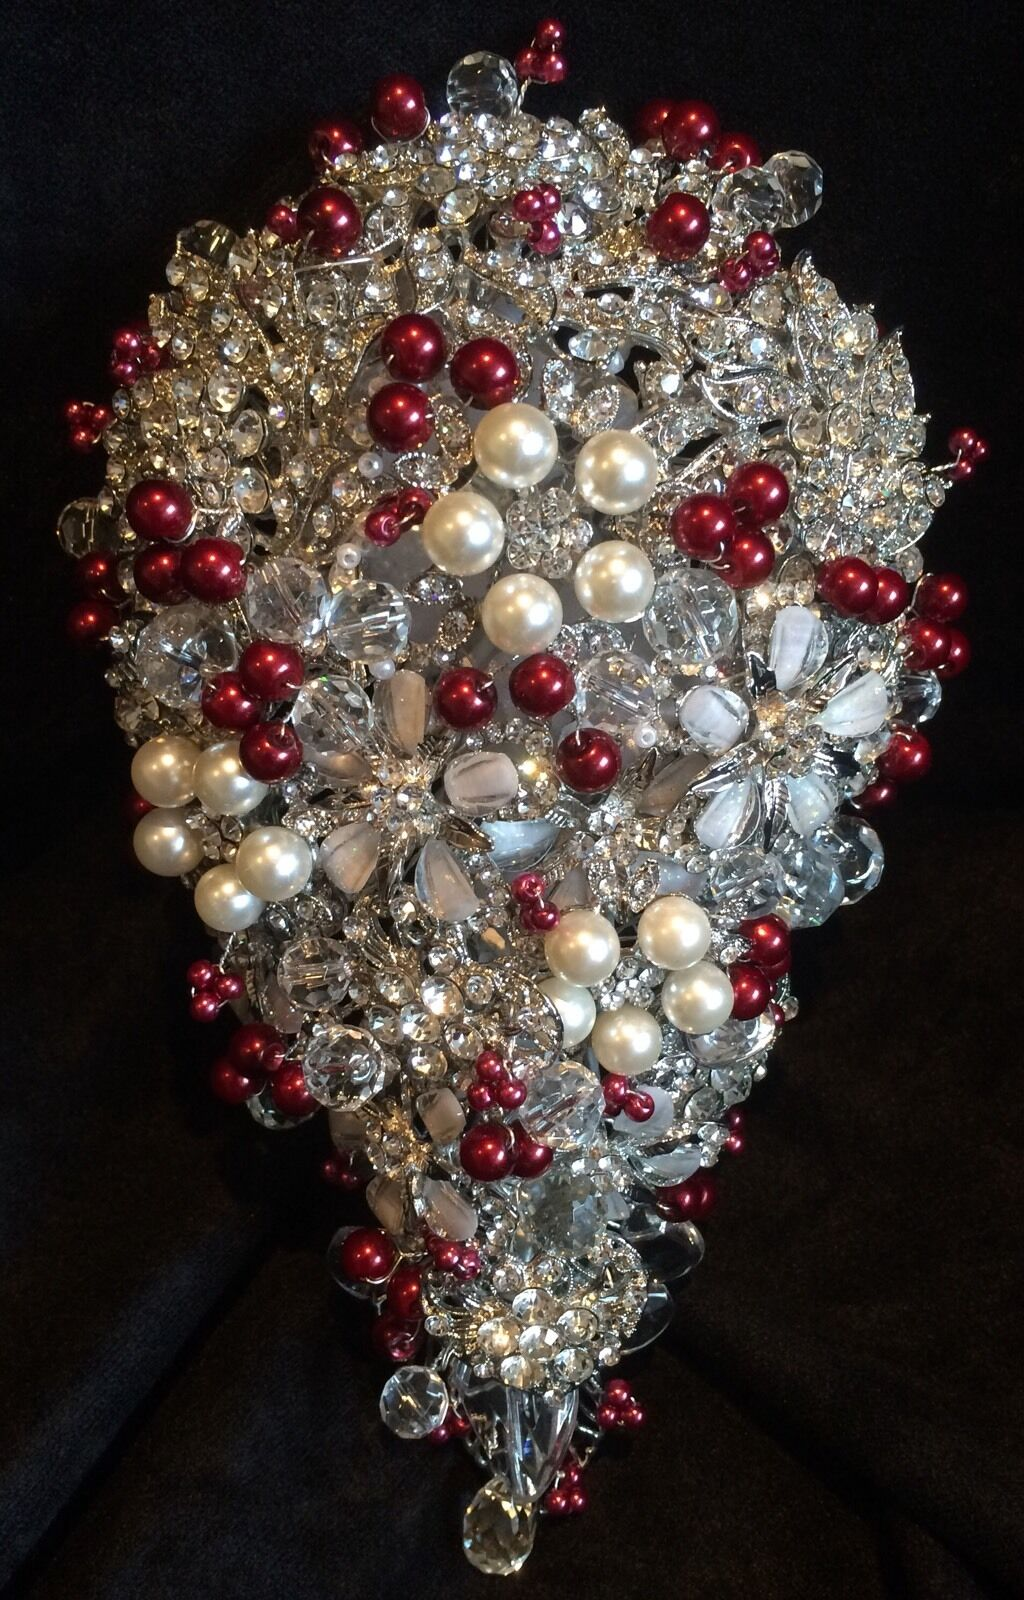 ️ Bridal Brooch Bouquet rot Beads & Clear Crystal Beads With Or Without Pearls